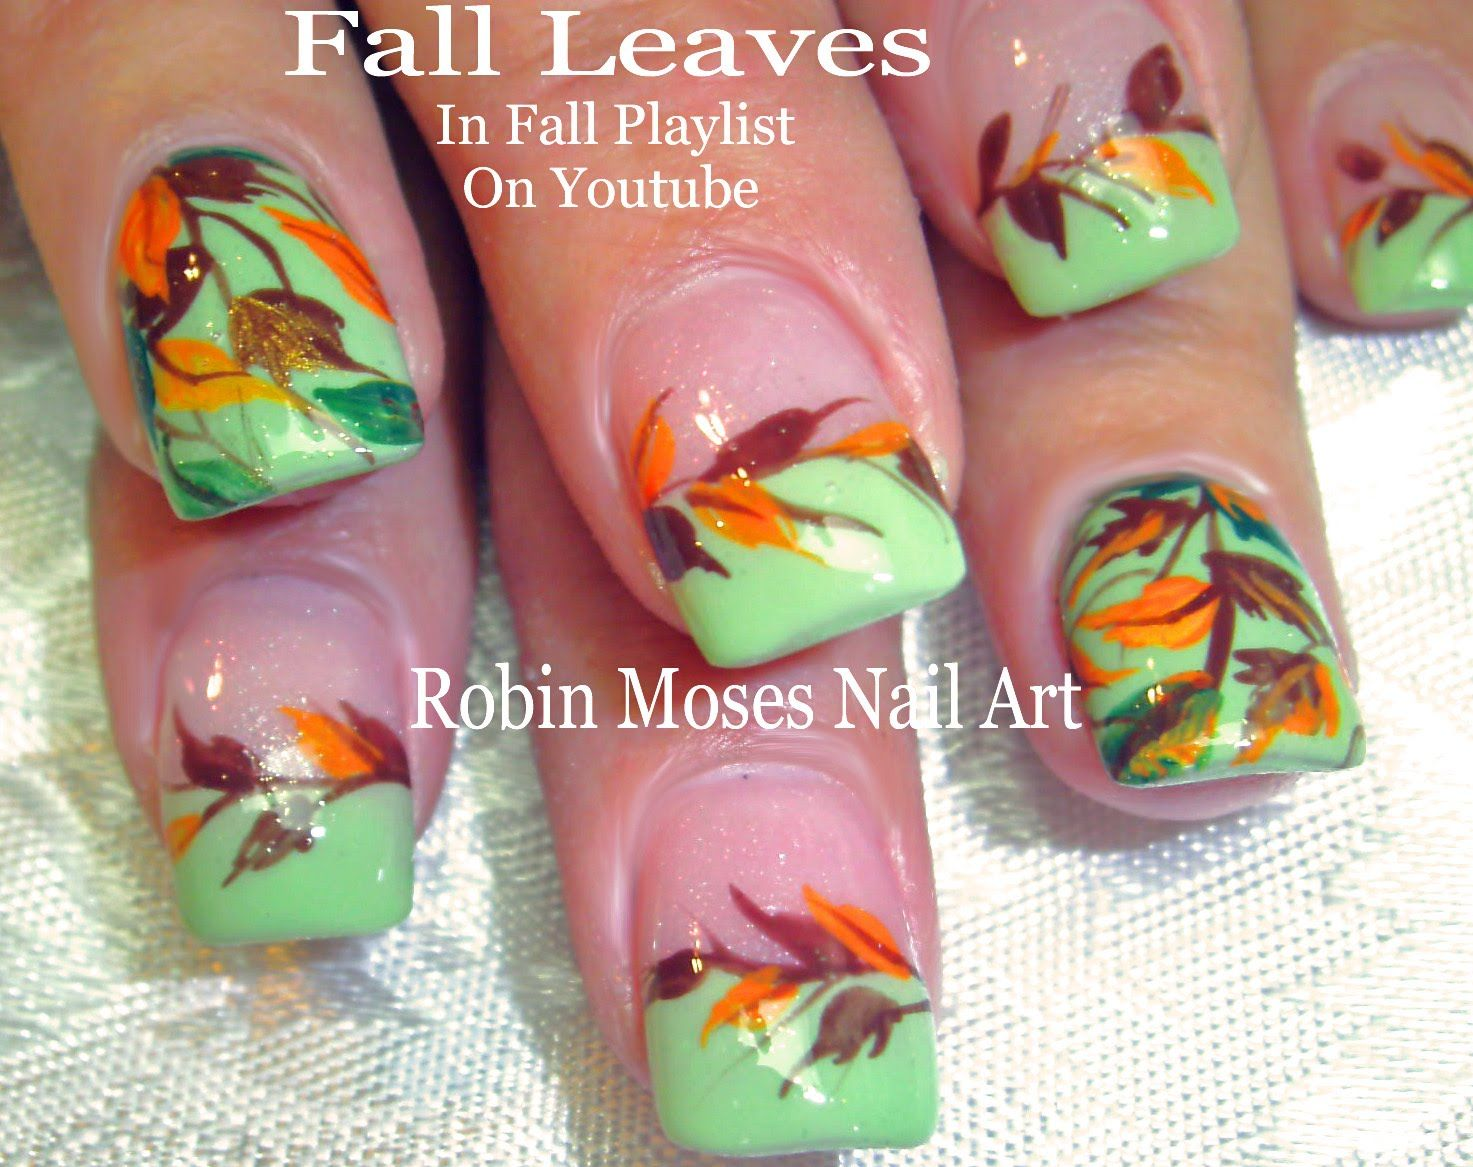 Nail art diy fall nails easy autumn leaves design tutorial subscribe to my channel here httpbit1udlr1b and nail art prinsesfo Images